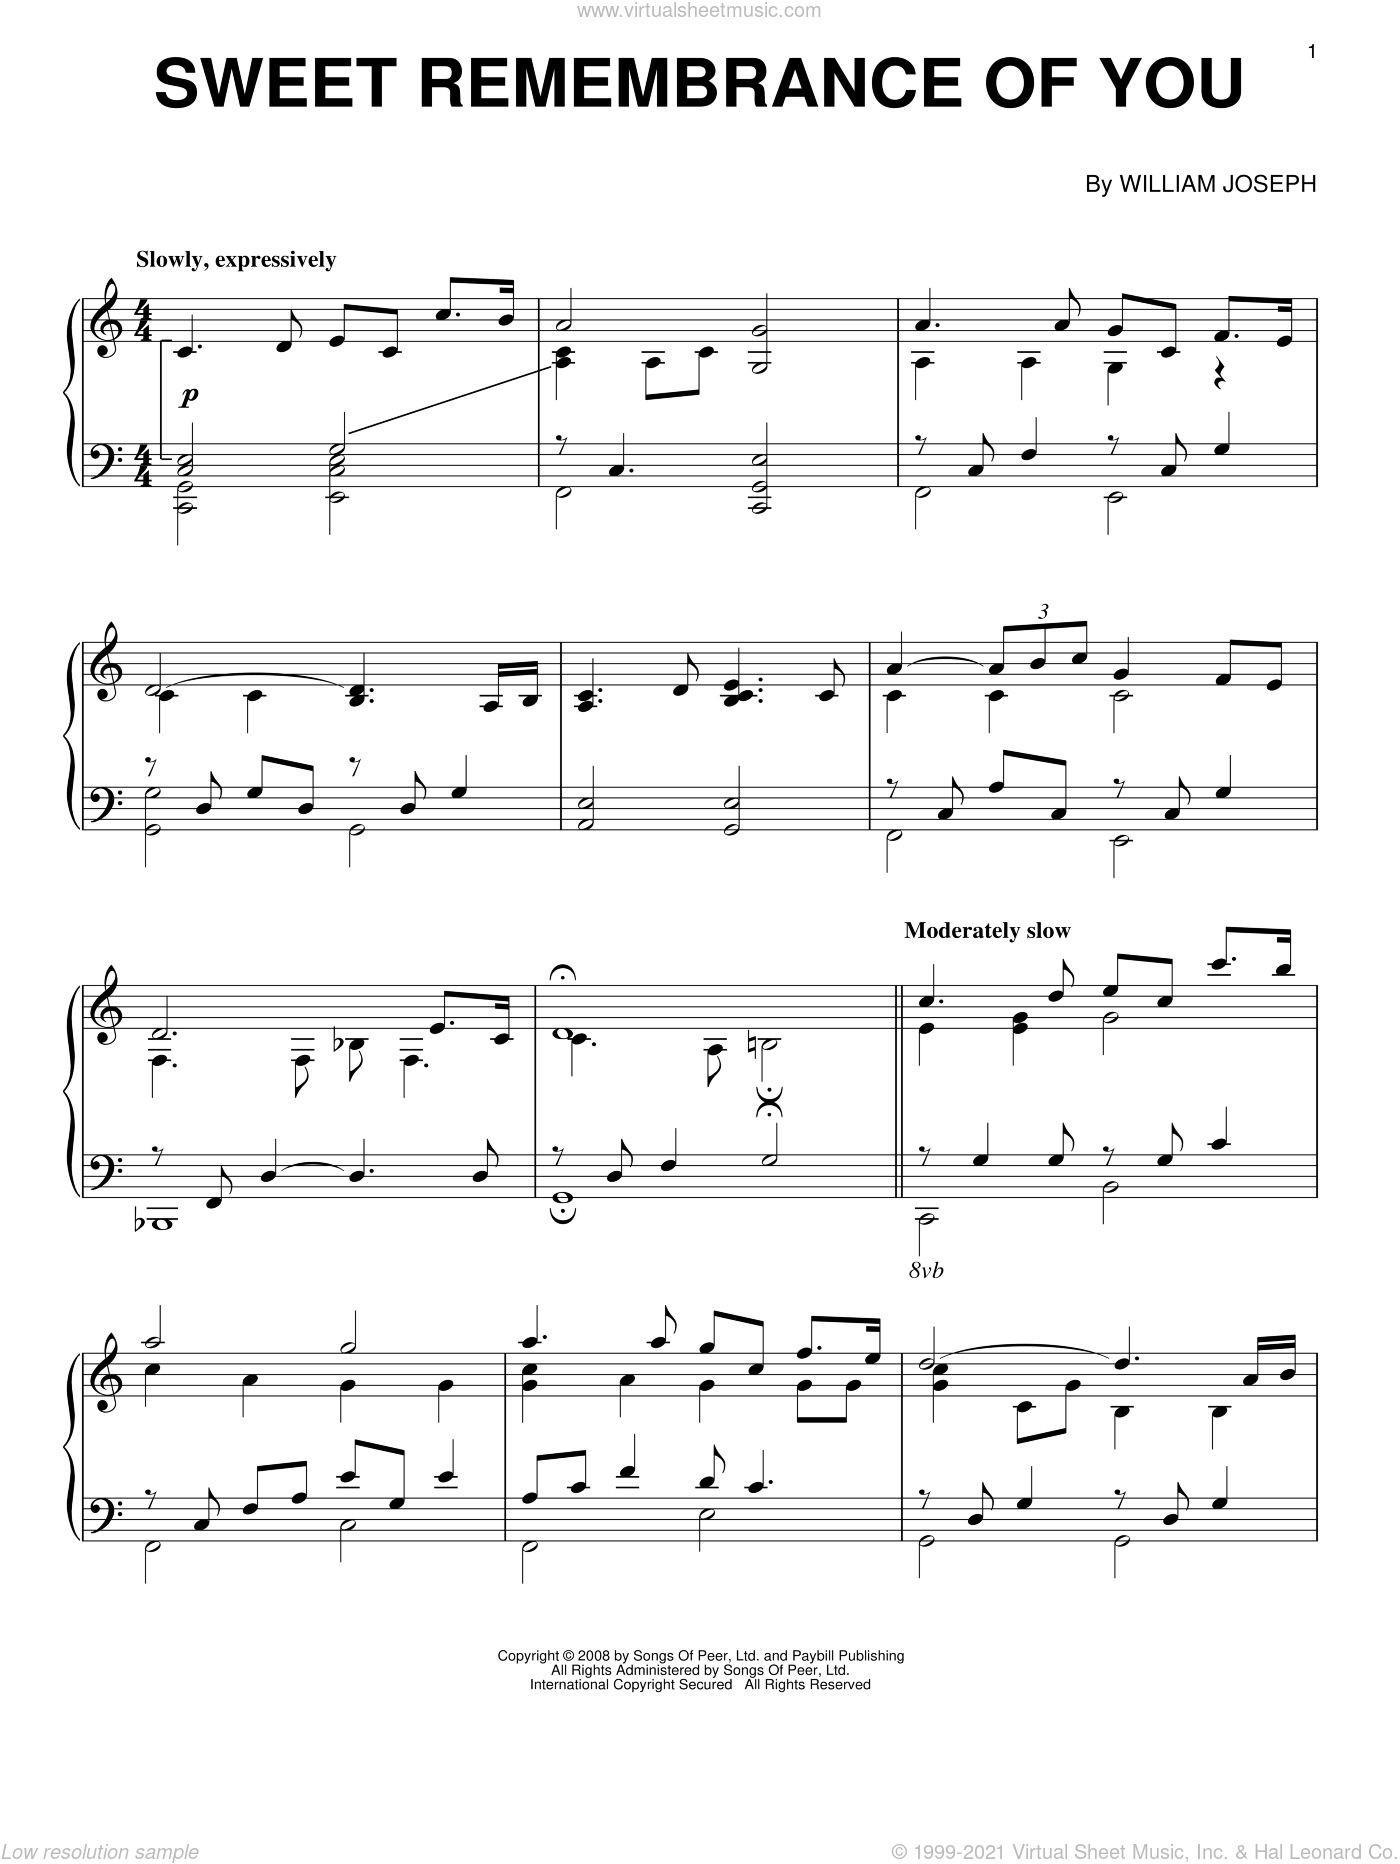 Sweet Remembrance Of You sheet music for piano solo by William Joseph. Score Image Preview.